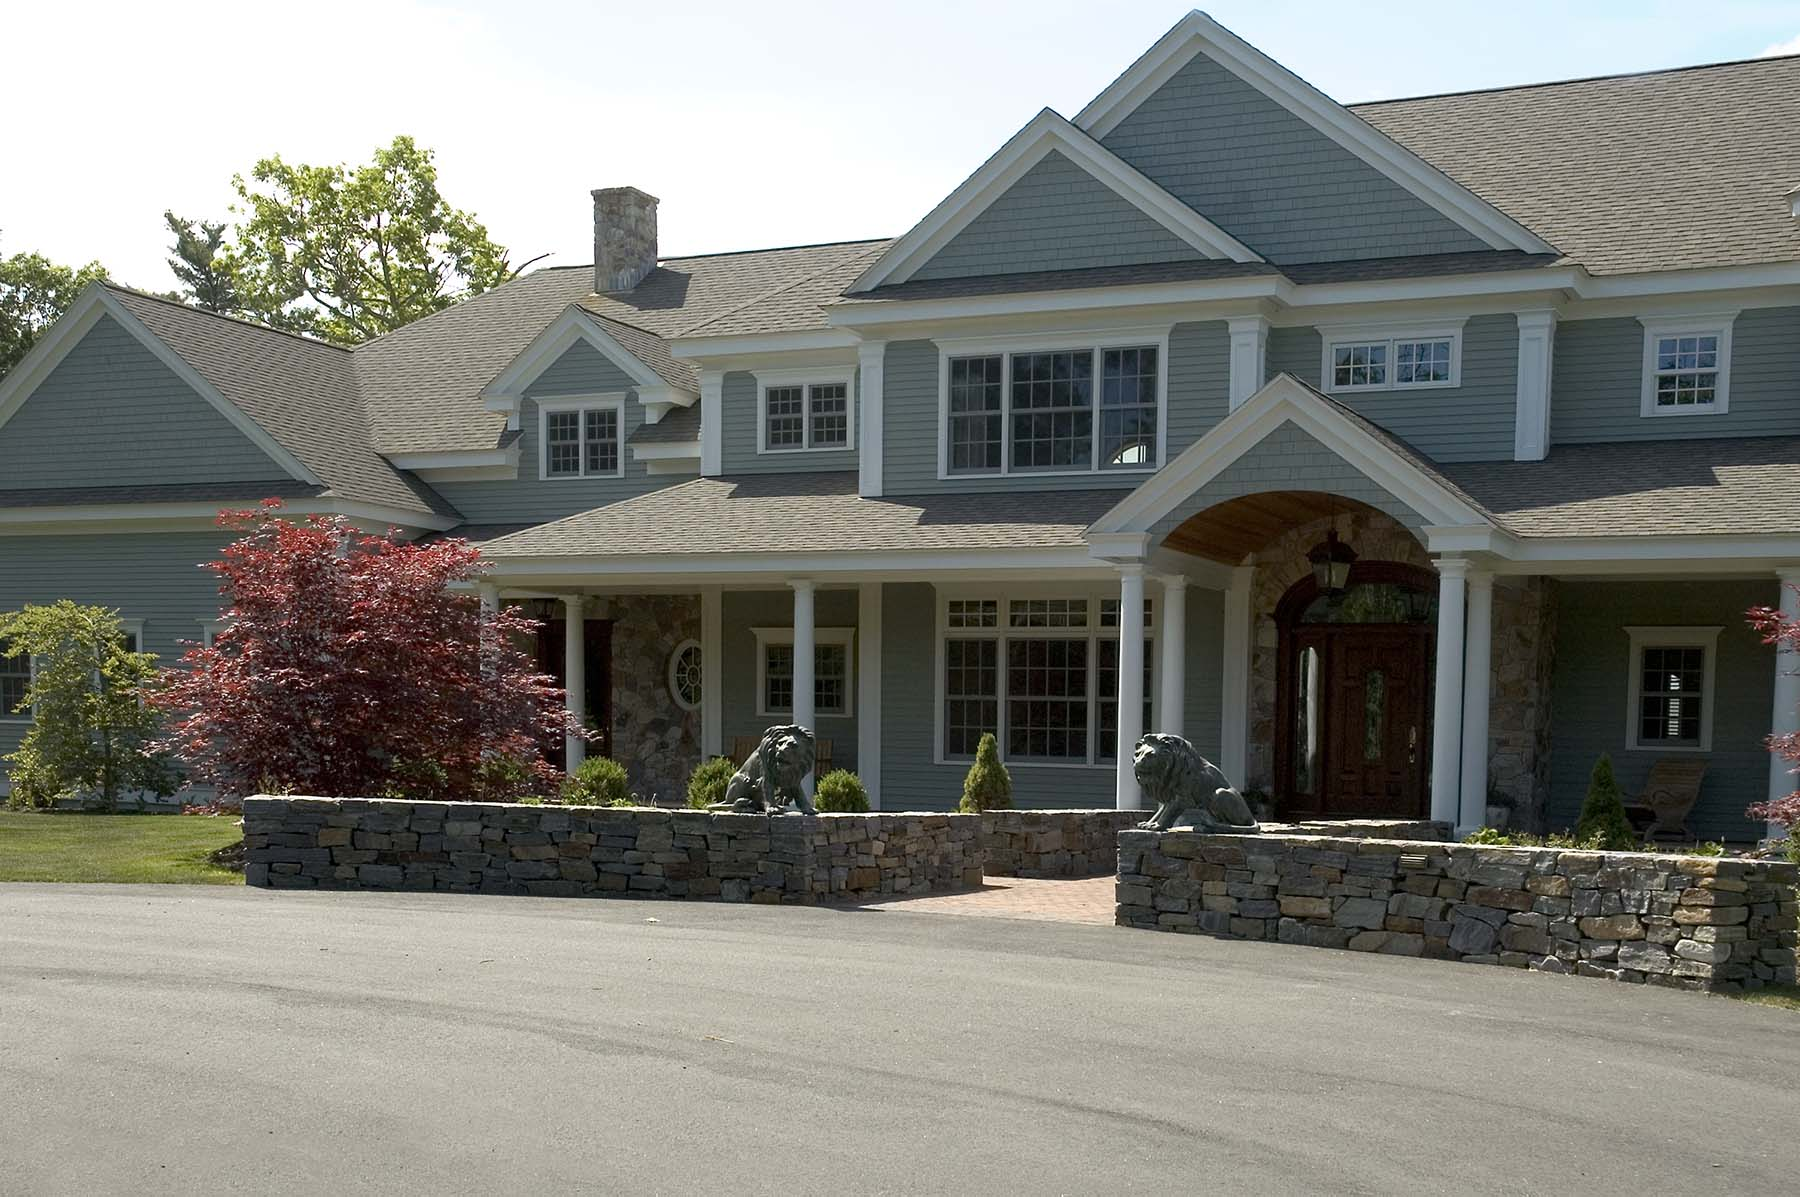 natural Adirondack stone wall in front of house